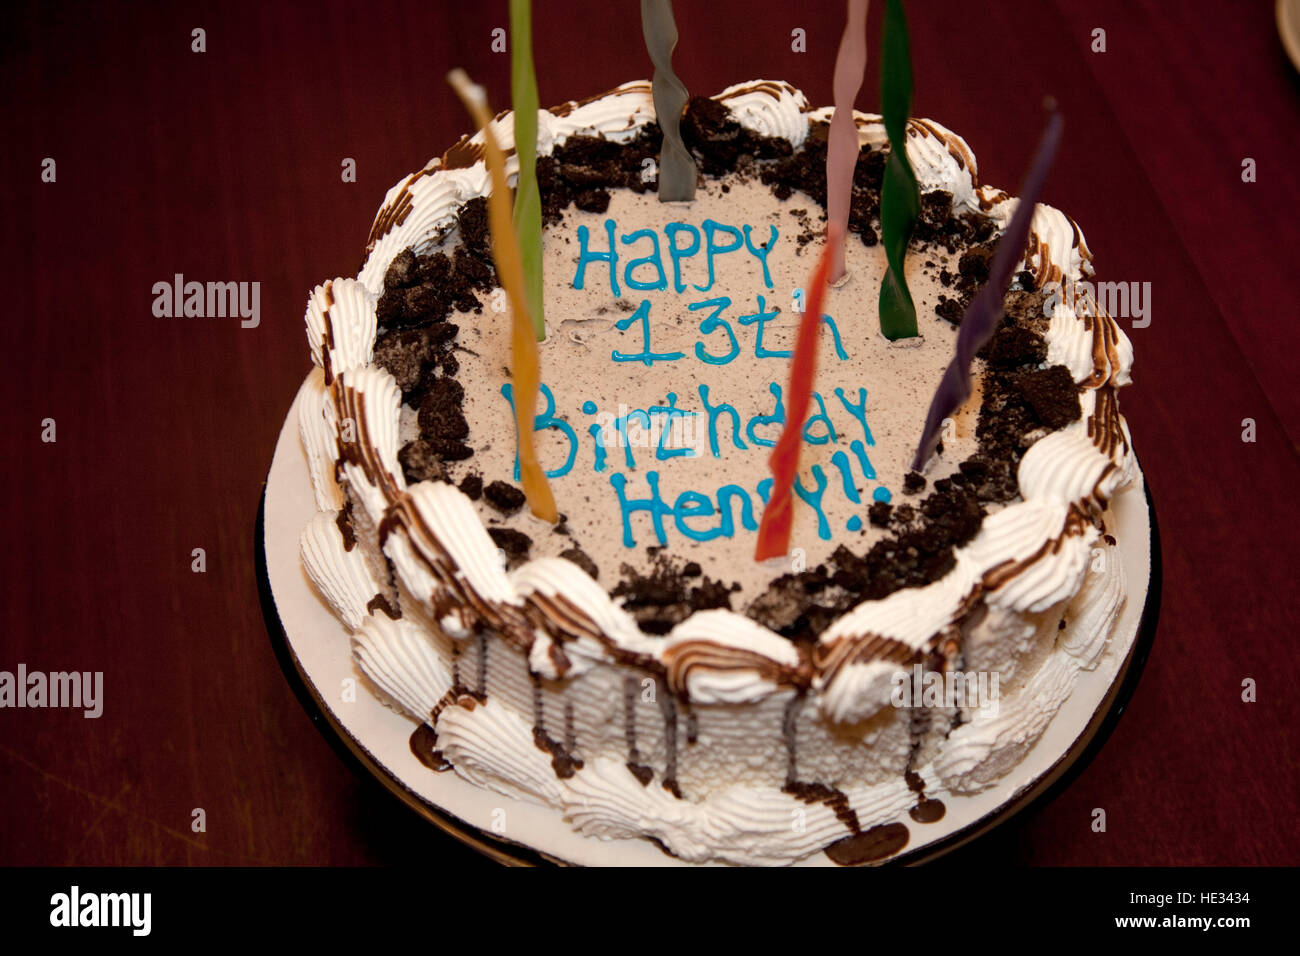 Decorative Happy Birthday Cake With Candles For A 13 Year Old Boy St Stock Photo Alamy